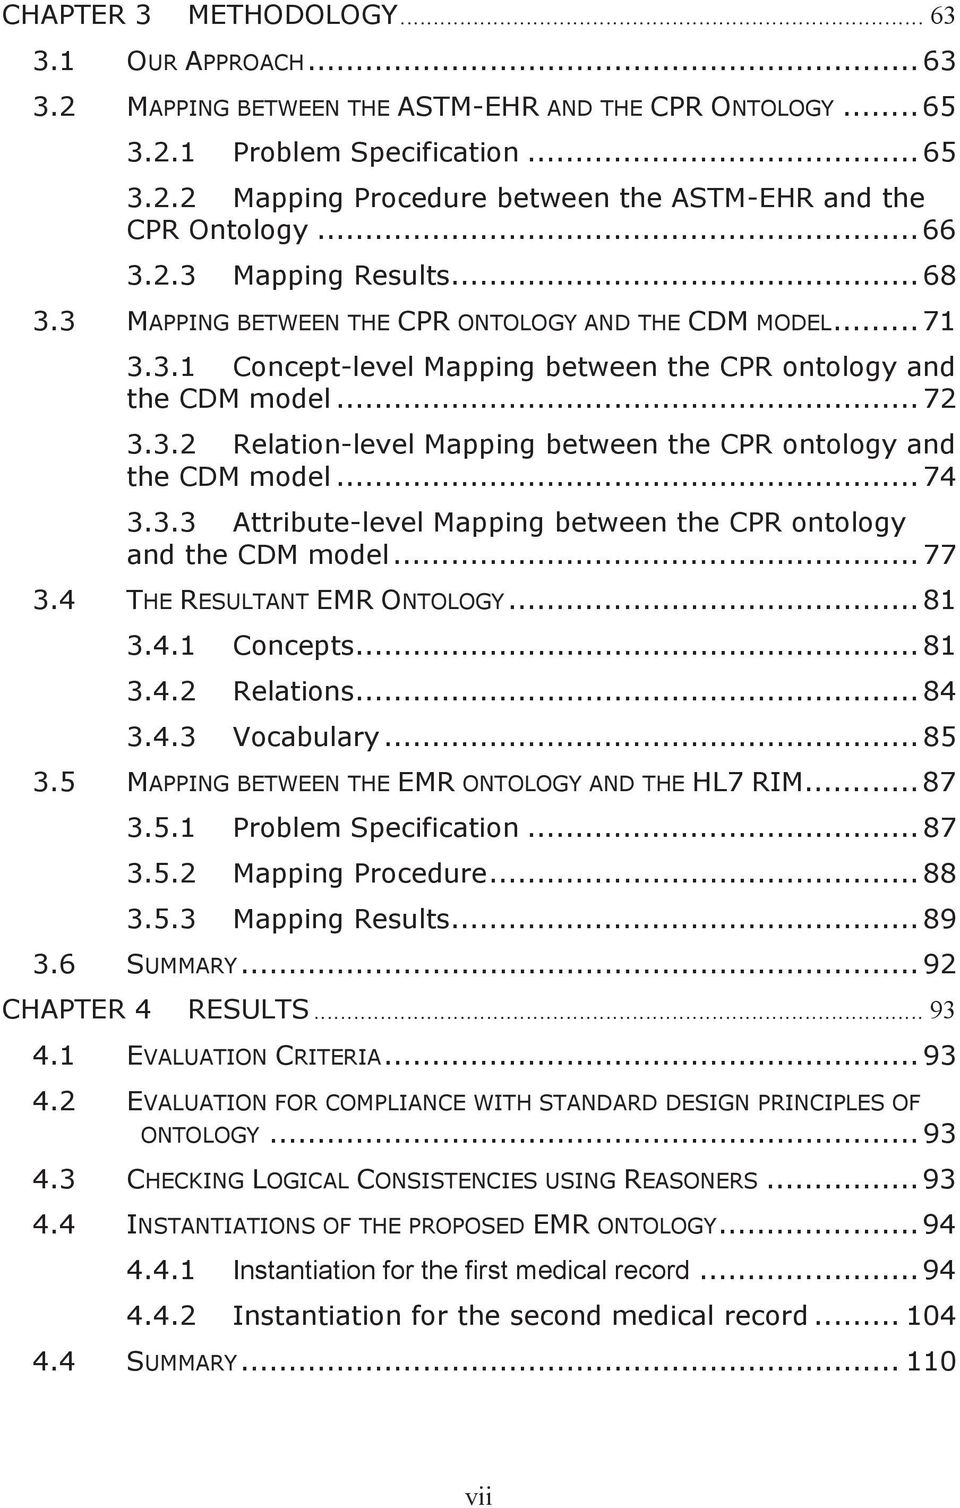 .. 74 3.3.3 Attribute-level Mapping between the CPR ontology and the CDM model... 77 3.4 THE RESULTANT EMR ONTOLOGY... 81 3.4.1 Concepts... 81 3.4.2 Relations... 84 3.4.3 Vocabulary... 85 3.